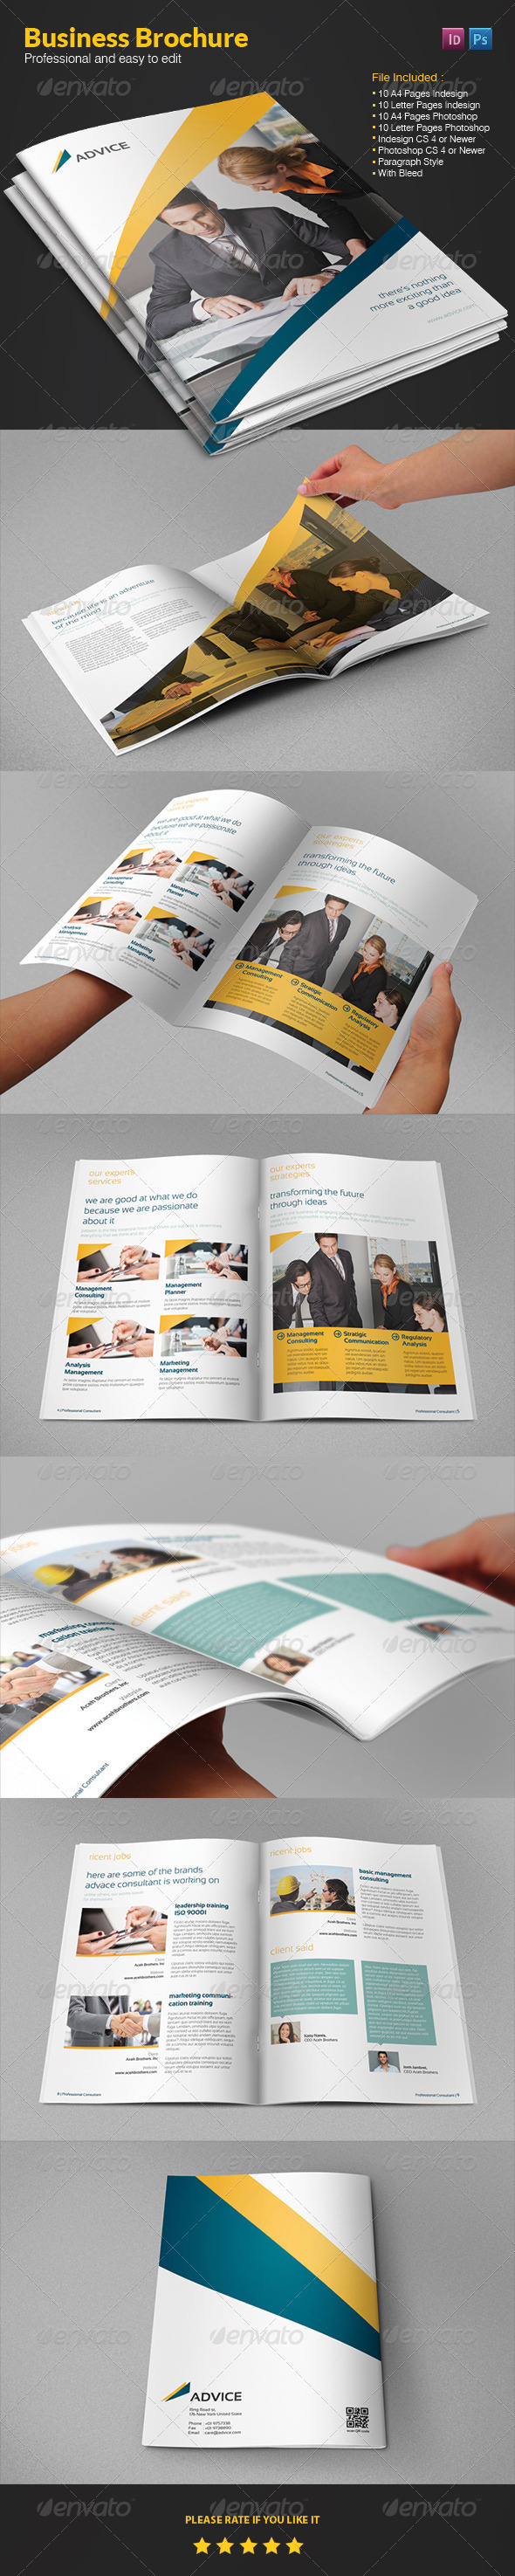 GraphicRiver Business Brochure 4169994